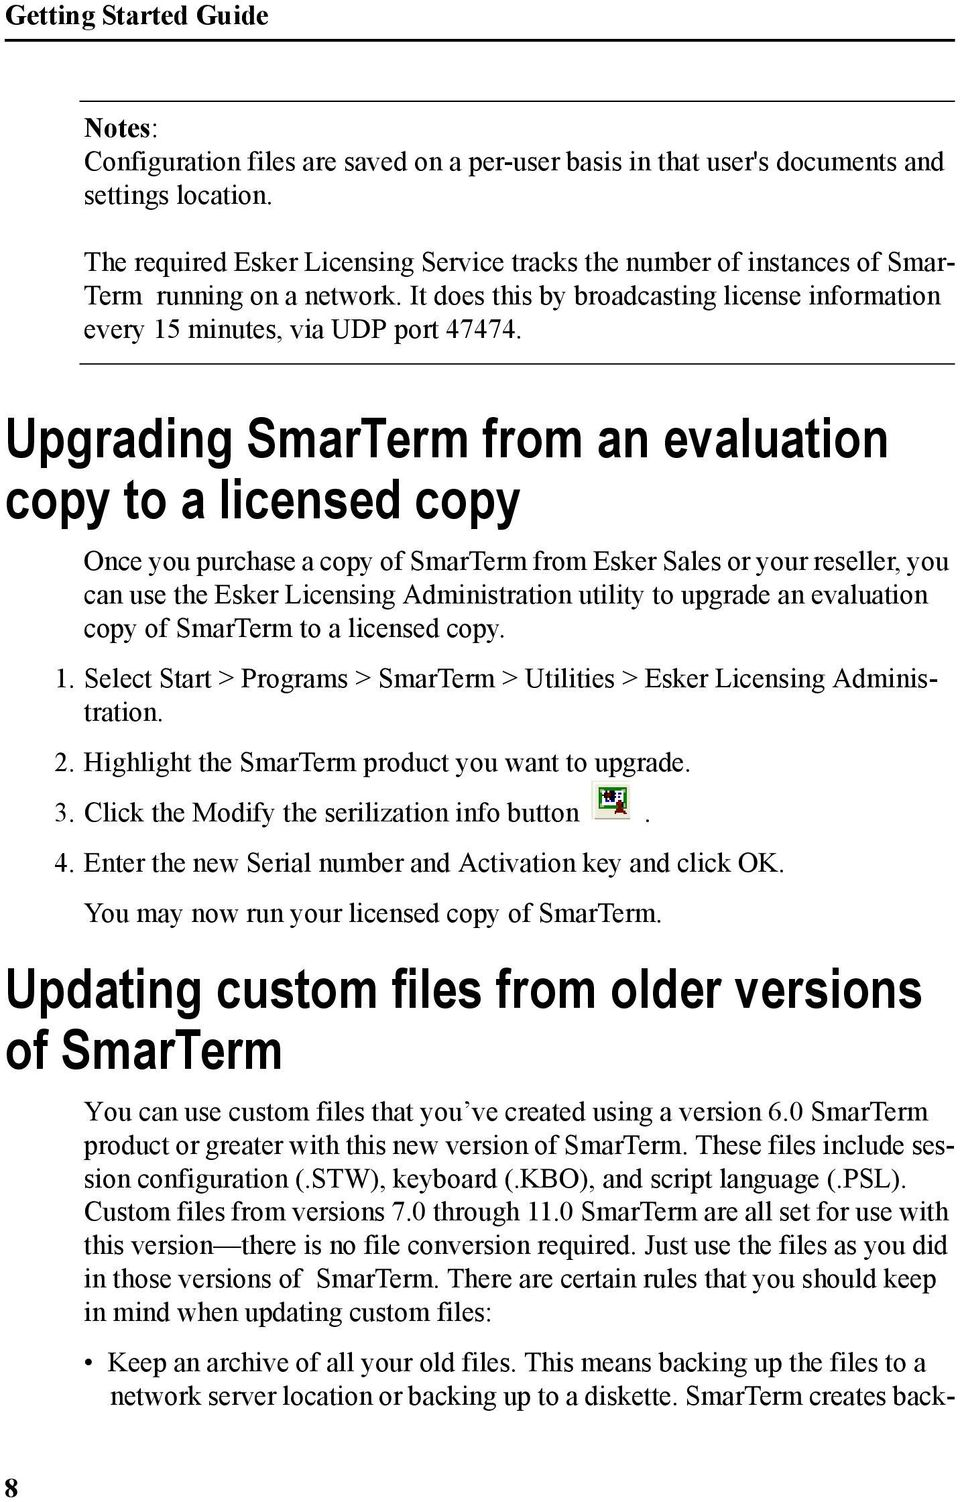 Upgrading SmarTerm from an evaluation copy to a licensed copy Once you purchase a copy of SmarTerm from Esker Sales or your reseller, you can use the Esker Licensing Administration utility to upgrade